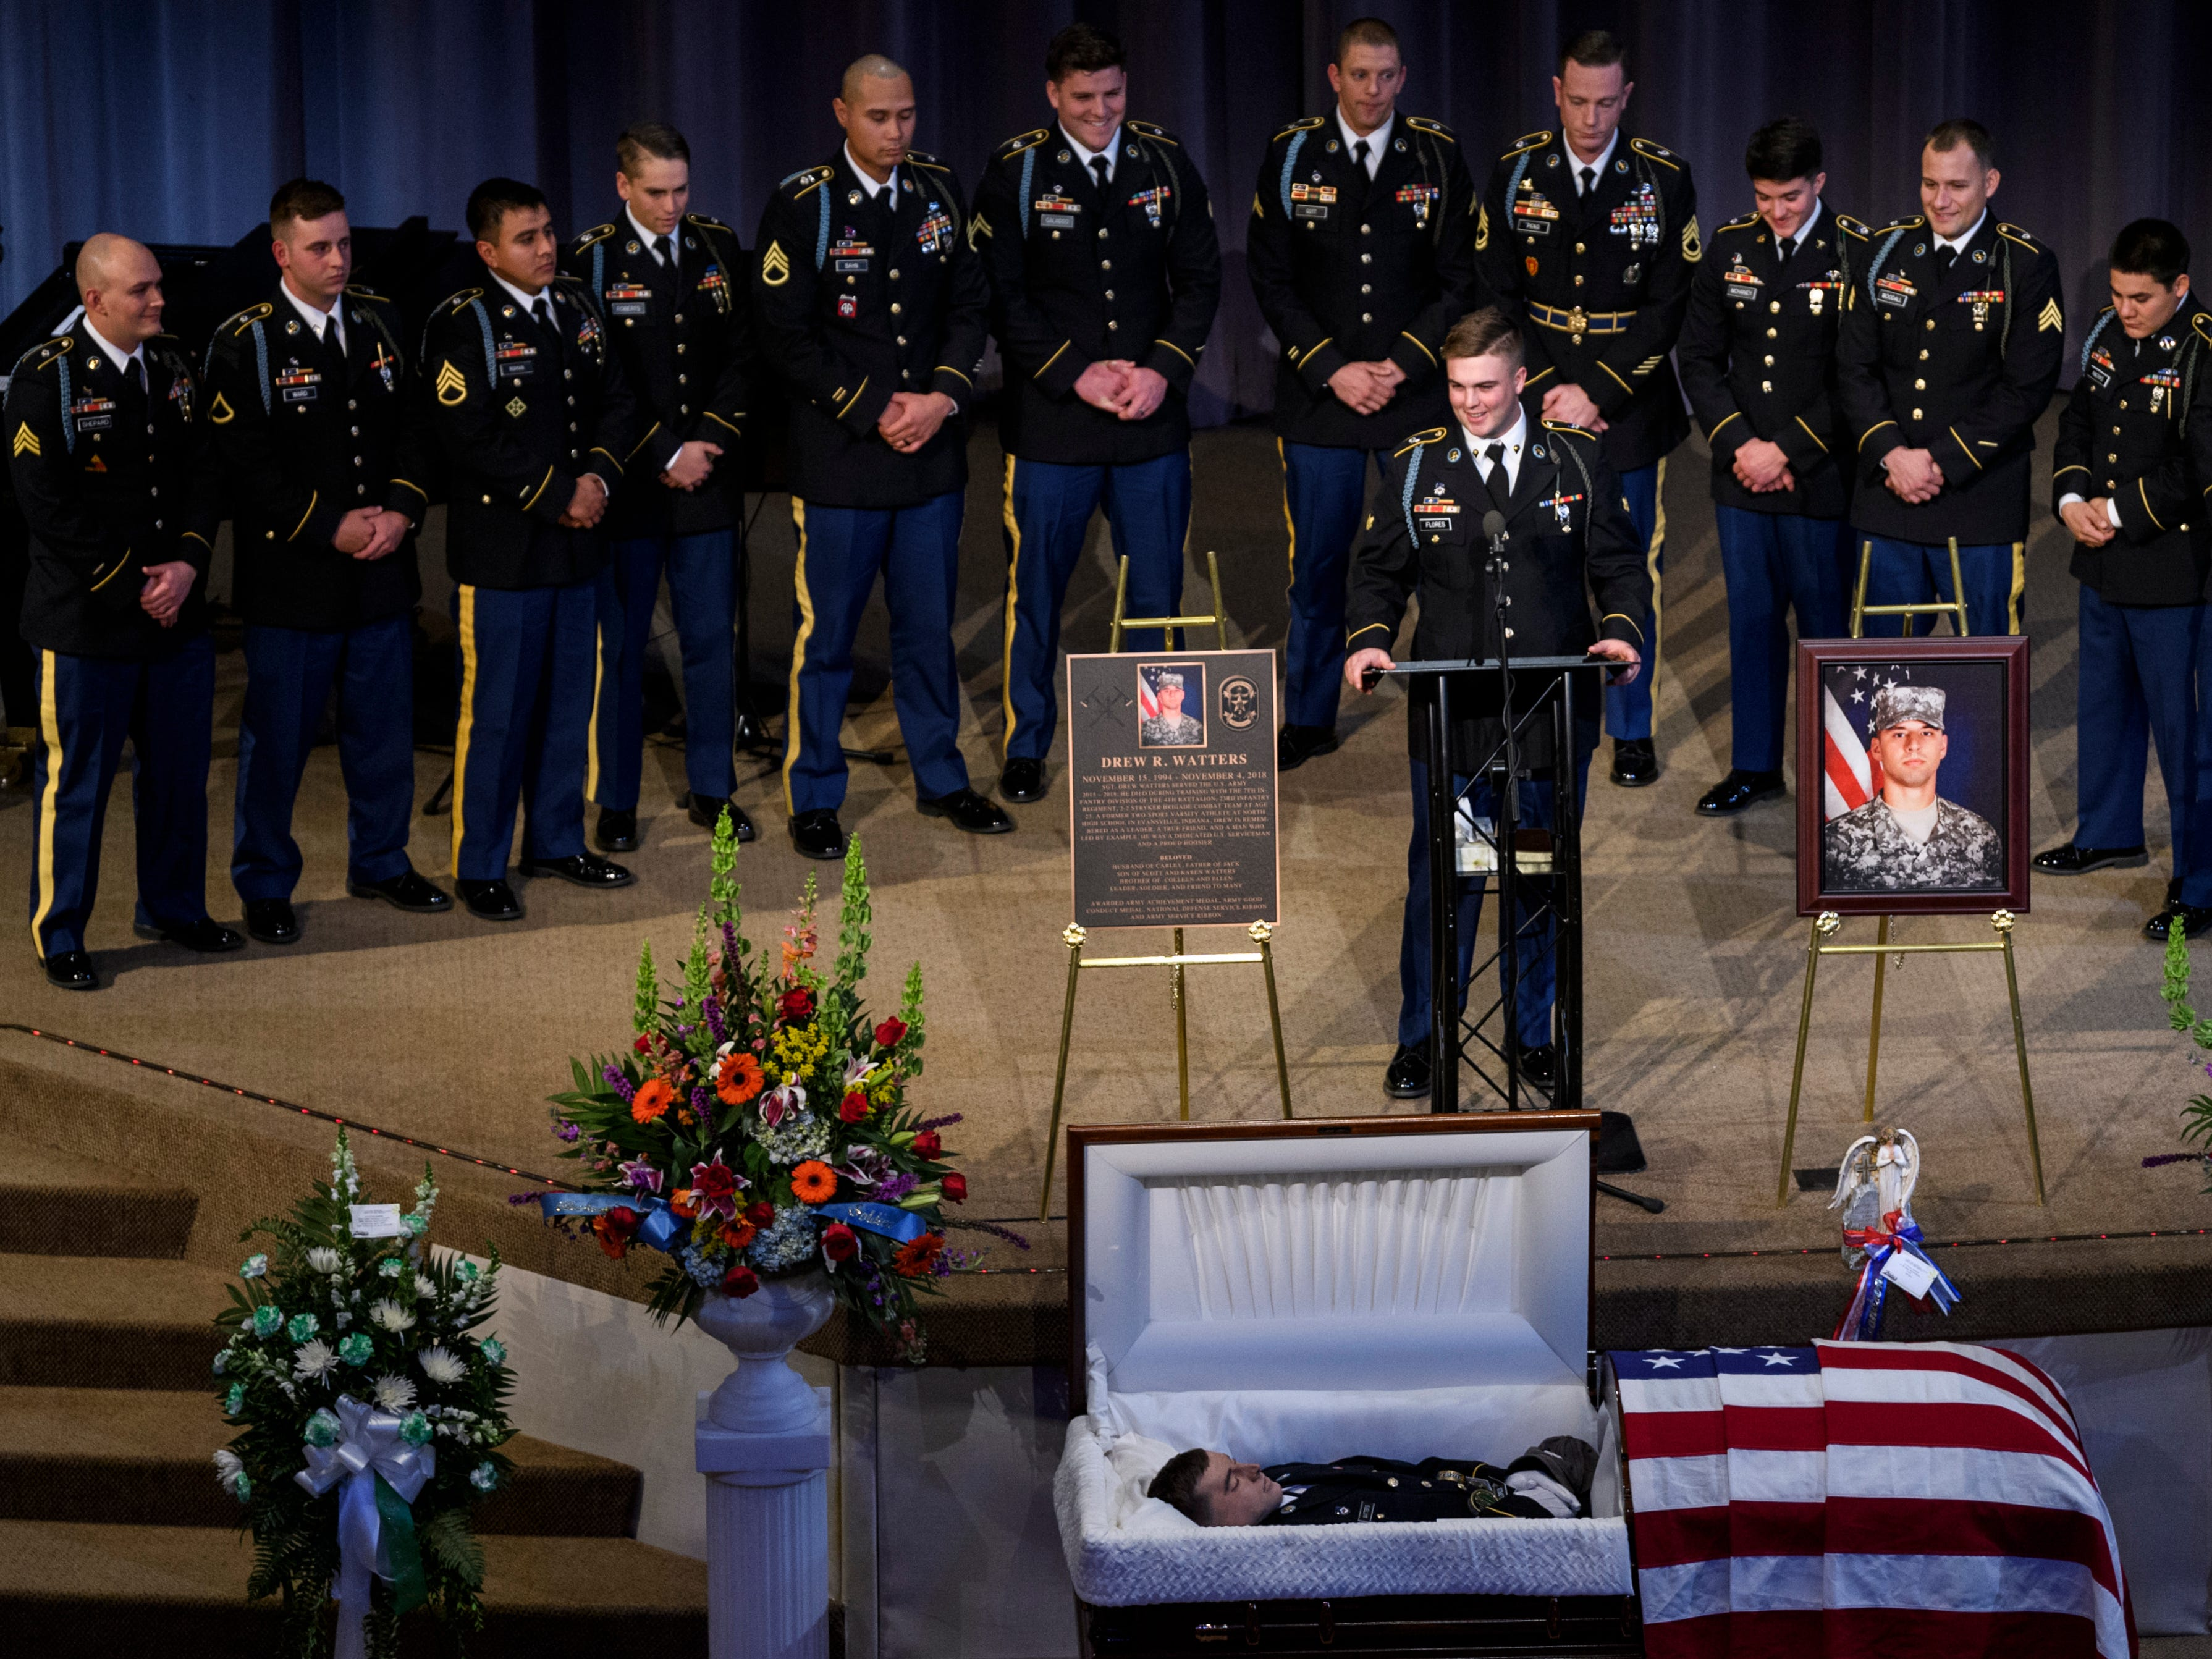 """Army Spc. Flores, center, speaks about his friend and squad mate Sgt. Drew Watters during the """"Celebration of Life"""" ceremony at Christian Fellowship Church in Evansville, Ind., Wednesday, Nov. 14, 2018. """"It's going to be tough but I'll strive to be half the man that Drew was,"""" Flores said."""